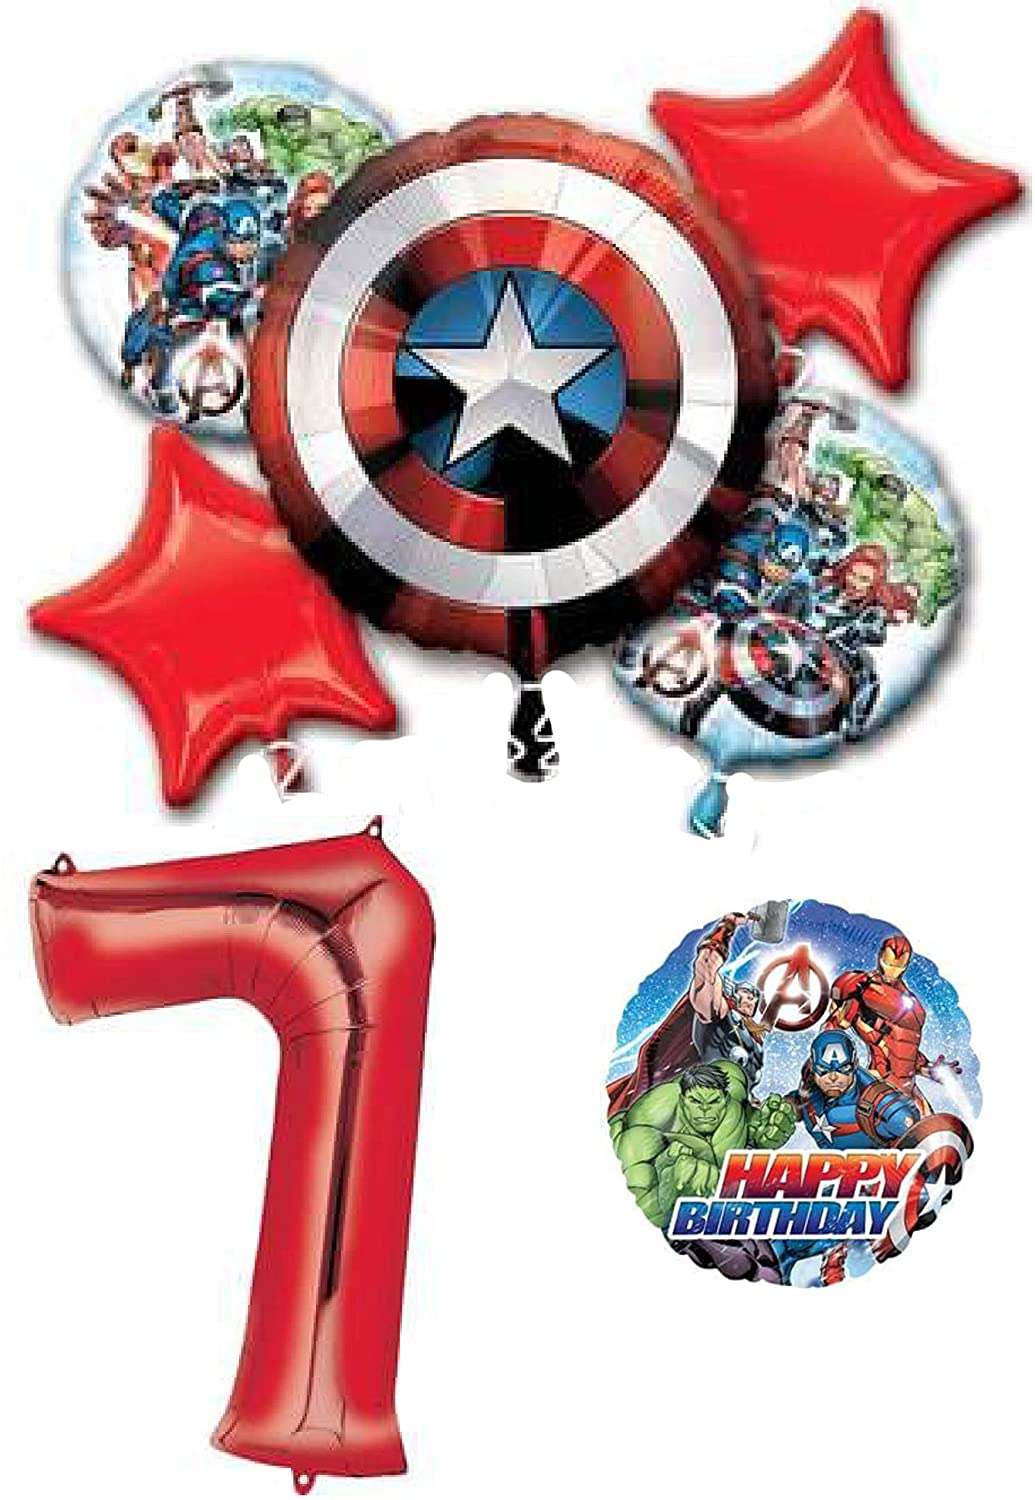 Marvel Avengers Shield 7th Birthday Party Balloon Decoration Bundle, Seven Year Old Birthday, 7 pieces